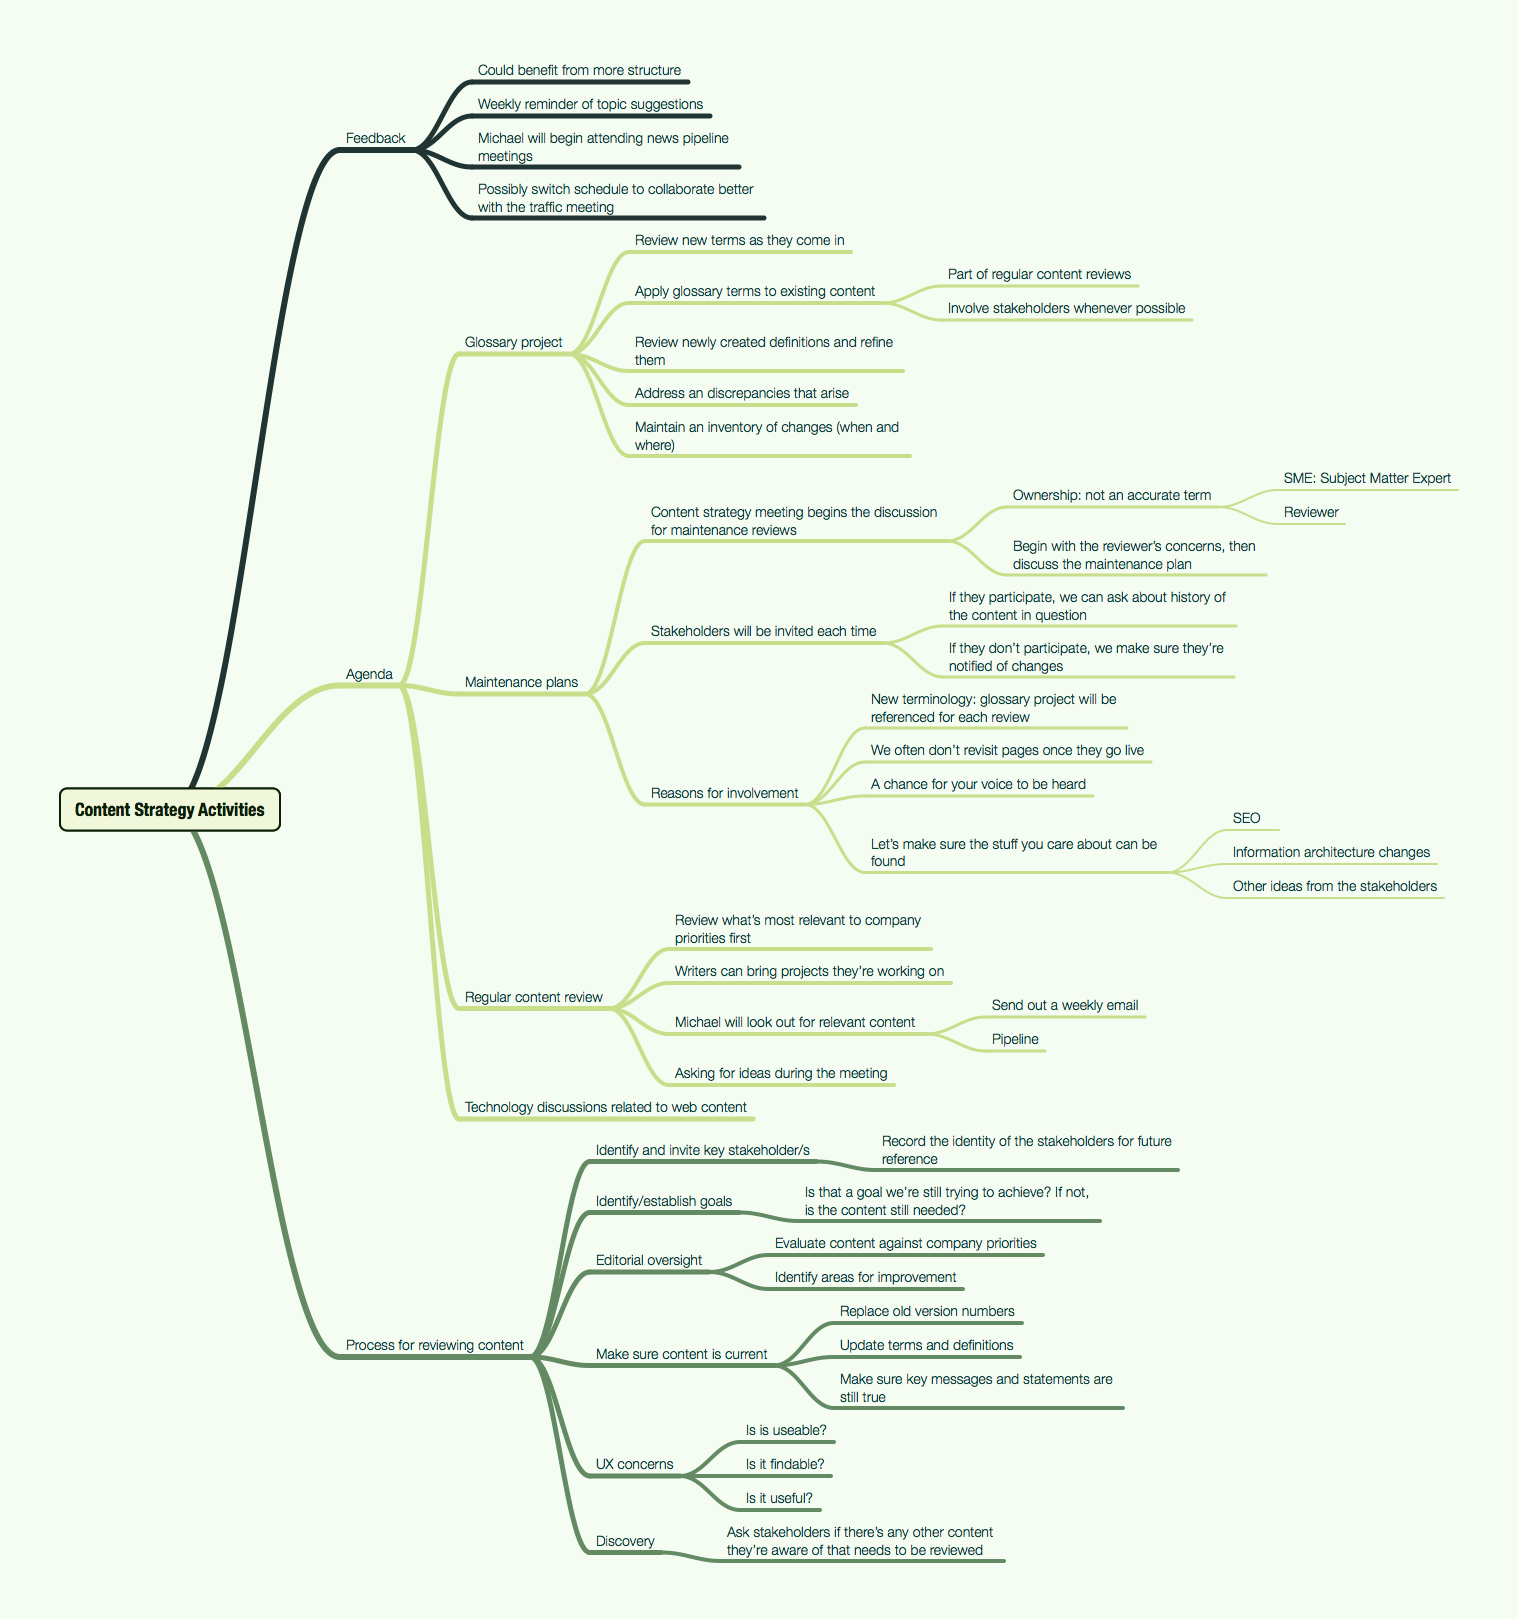 I often use mindmaps to capture information during meetings and document their relationships.